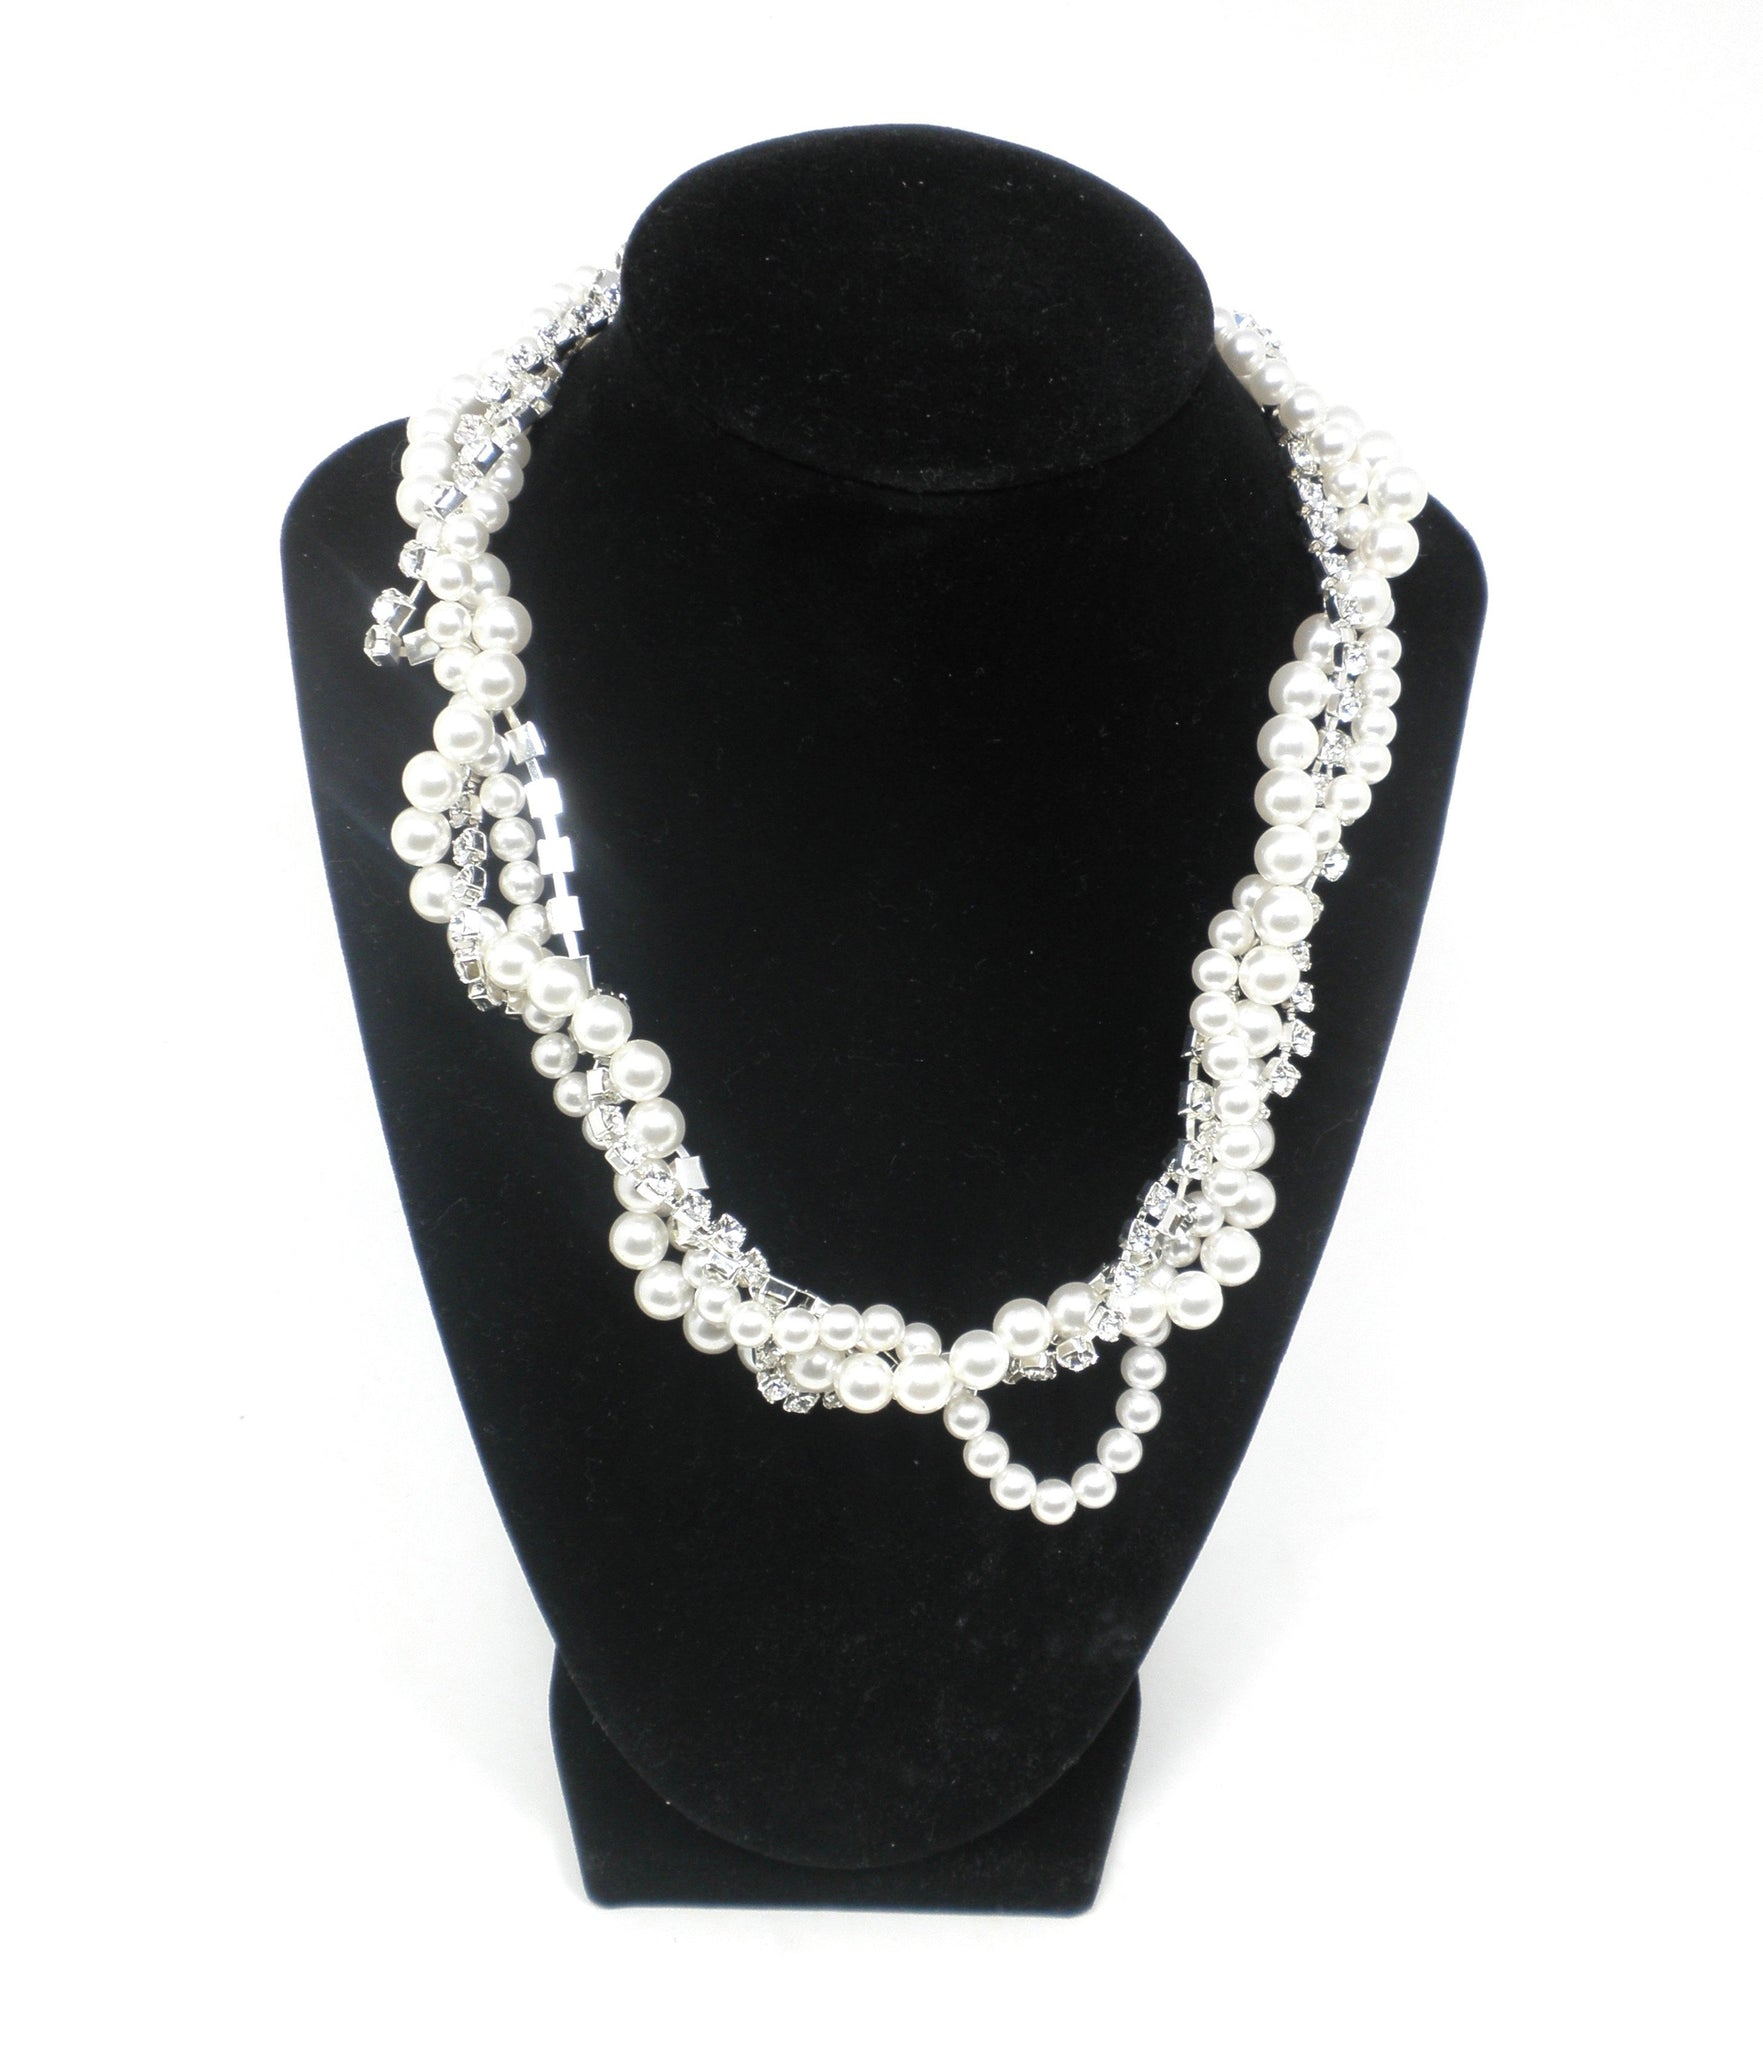 Pearl & Rhinestone Twisted Necklace - Donated From Designer - The Fashion Foundation